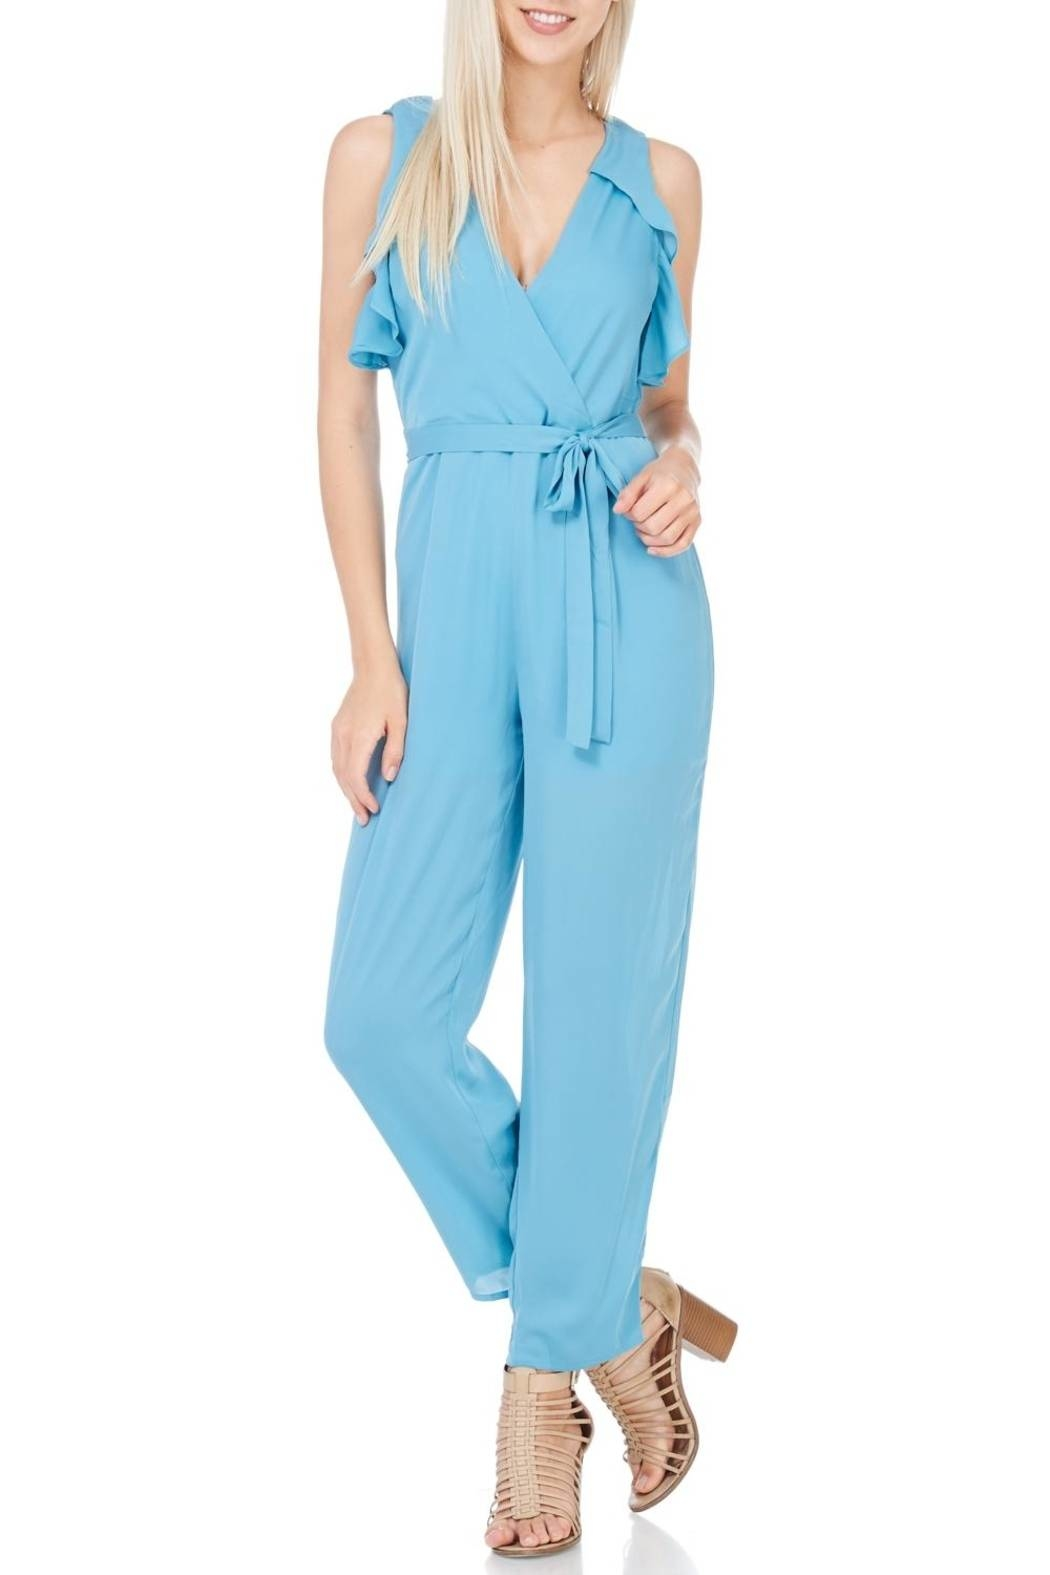 Everly Dusty Blue Lined Jumpsuit - Main Image